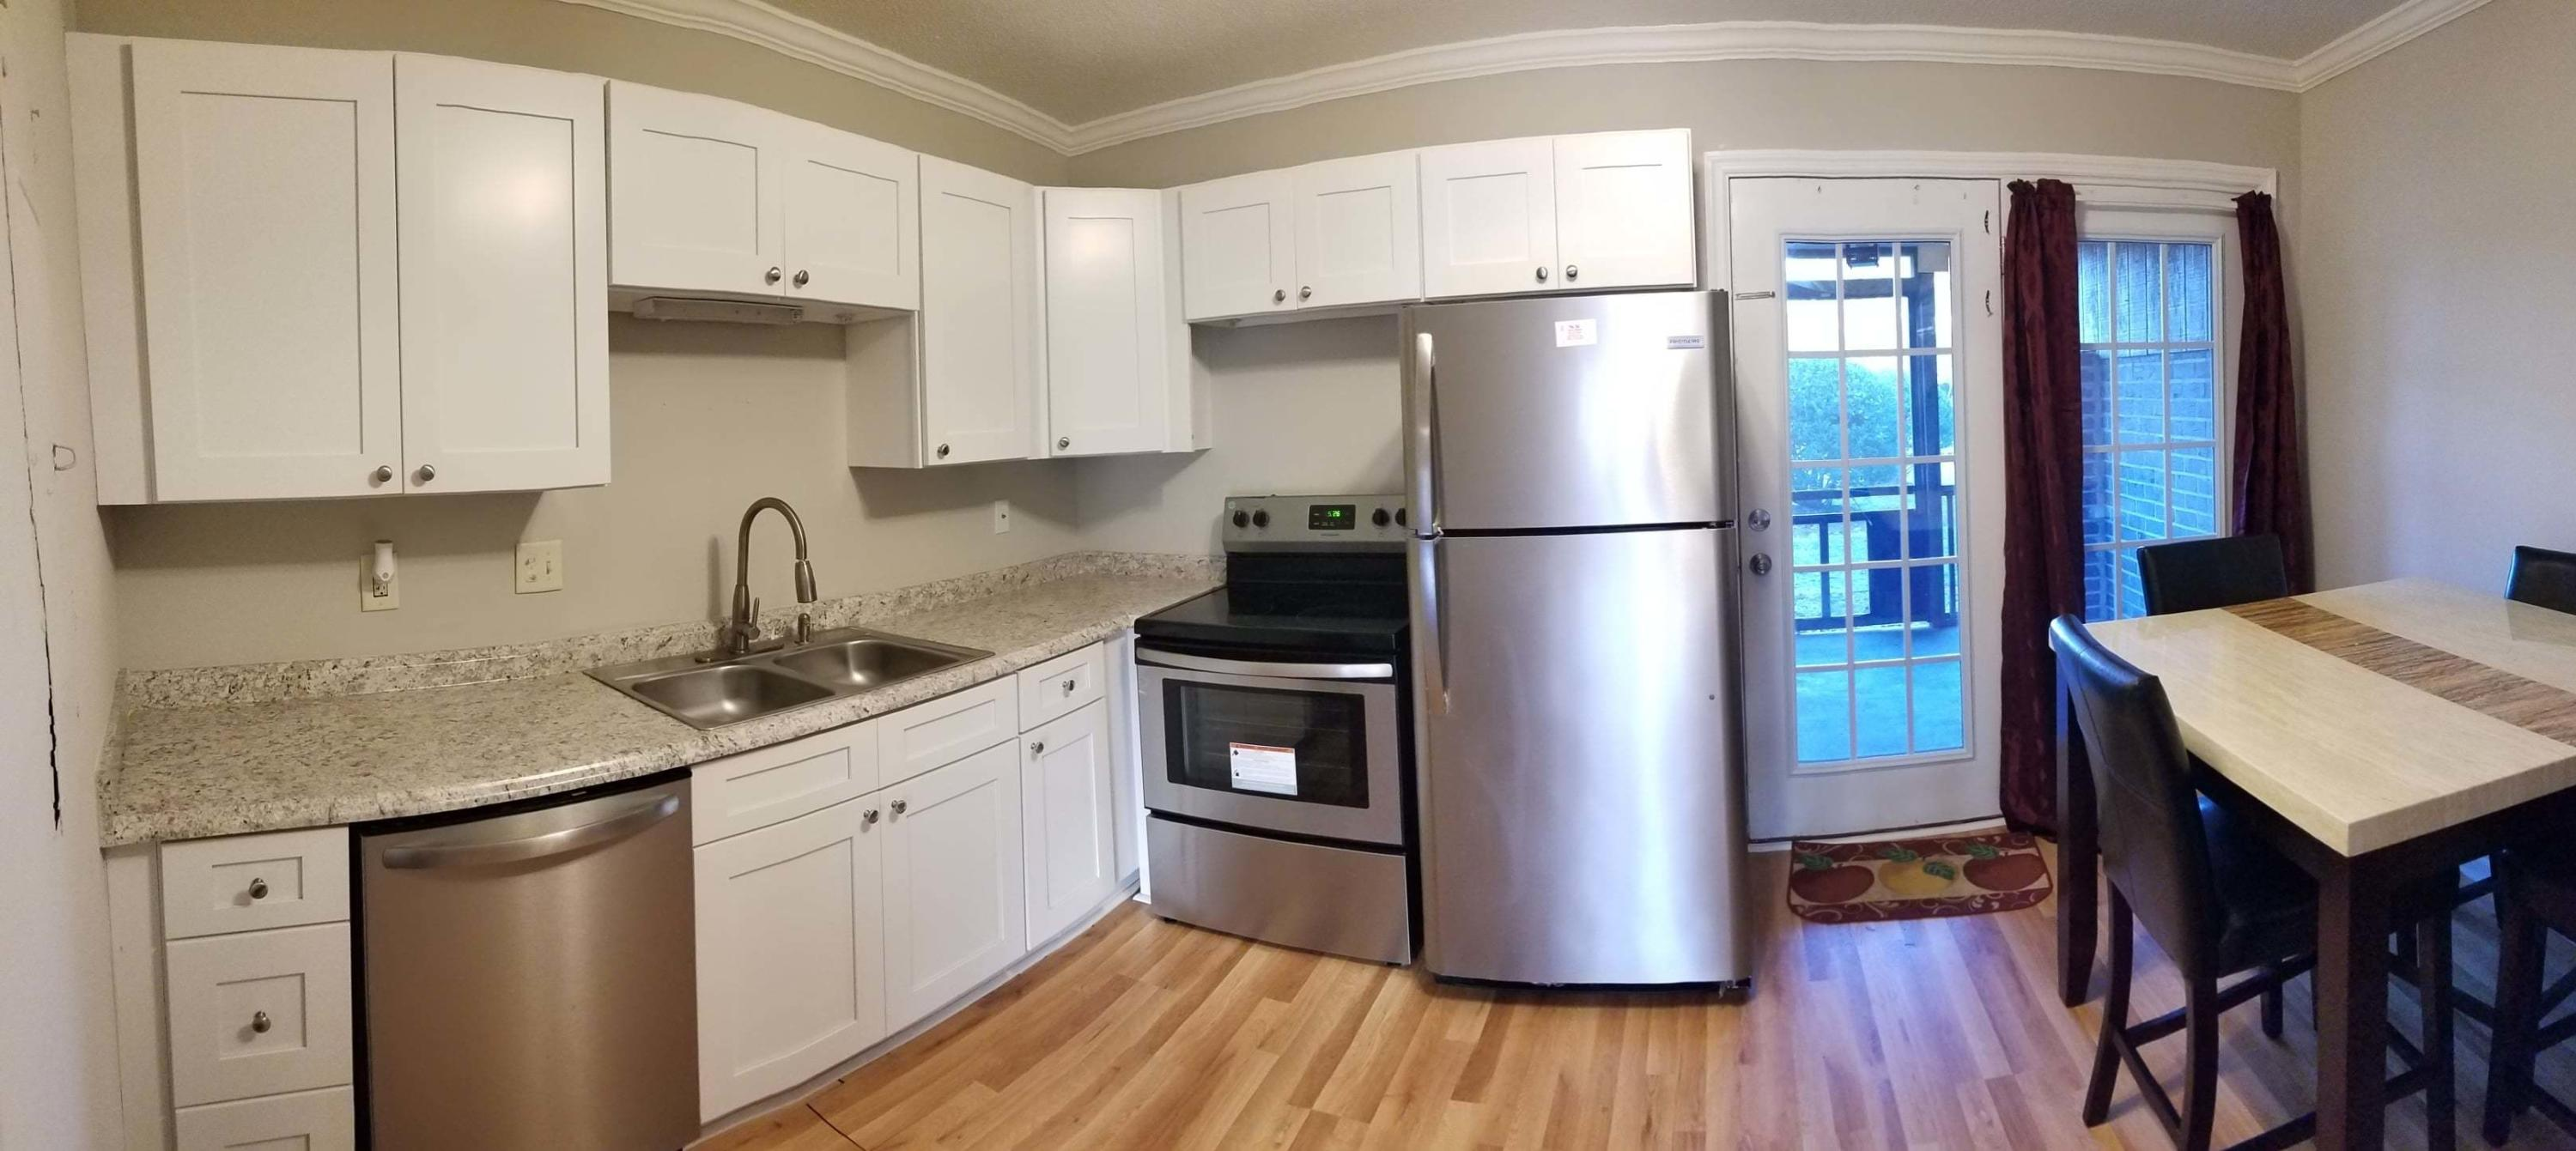 Mepkin Place Homes For Sale - 1735 Boone Hall, Charleston, SC - 6